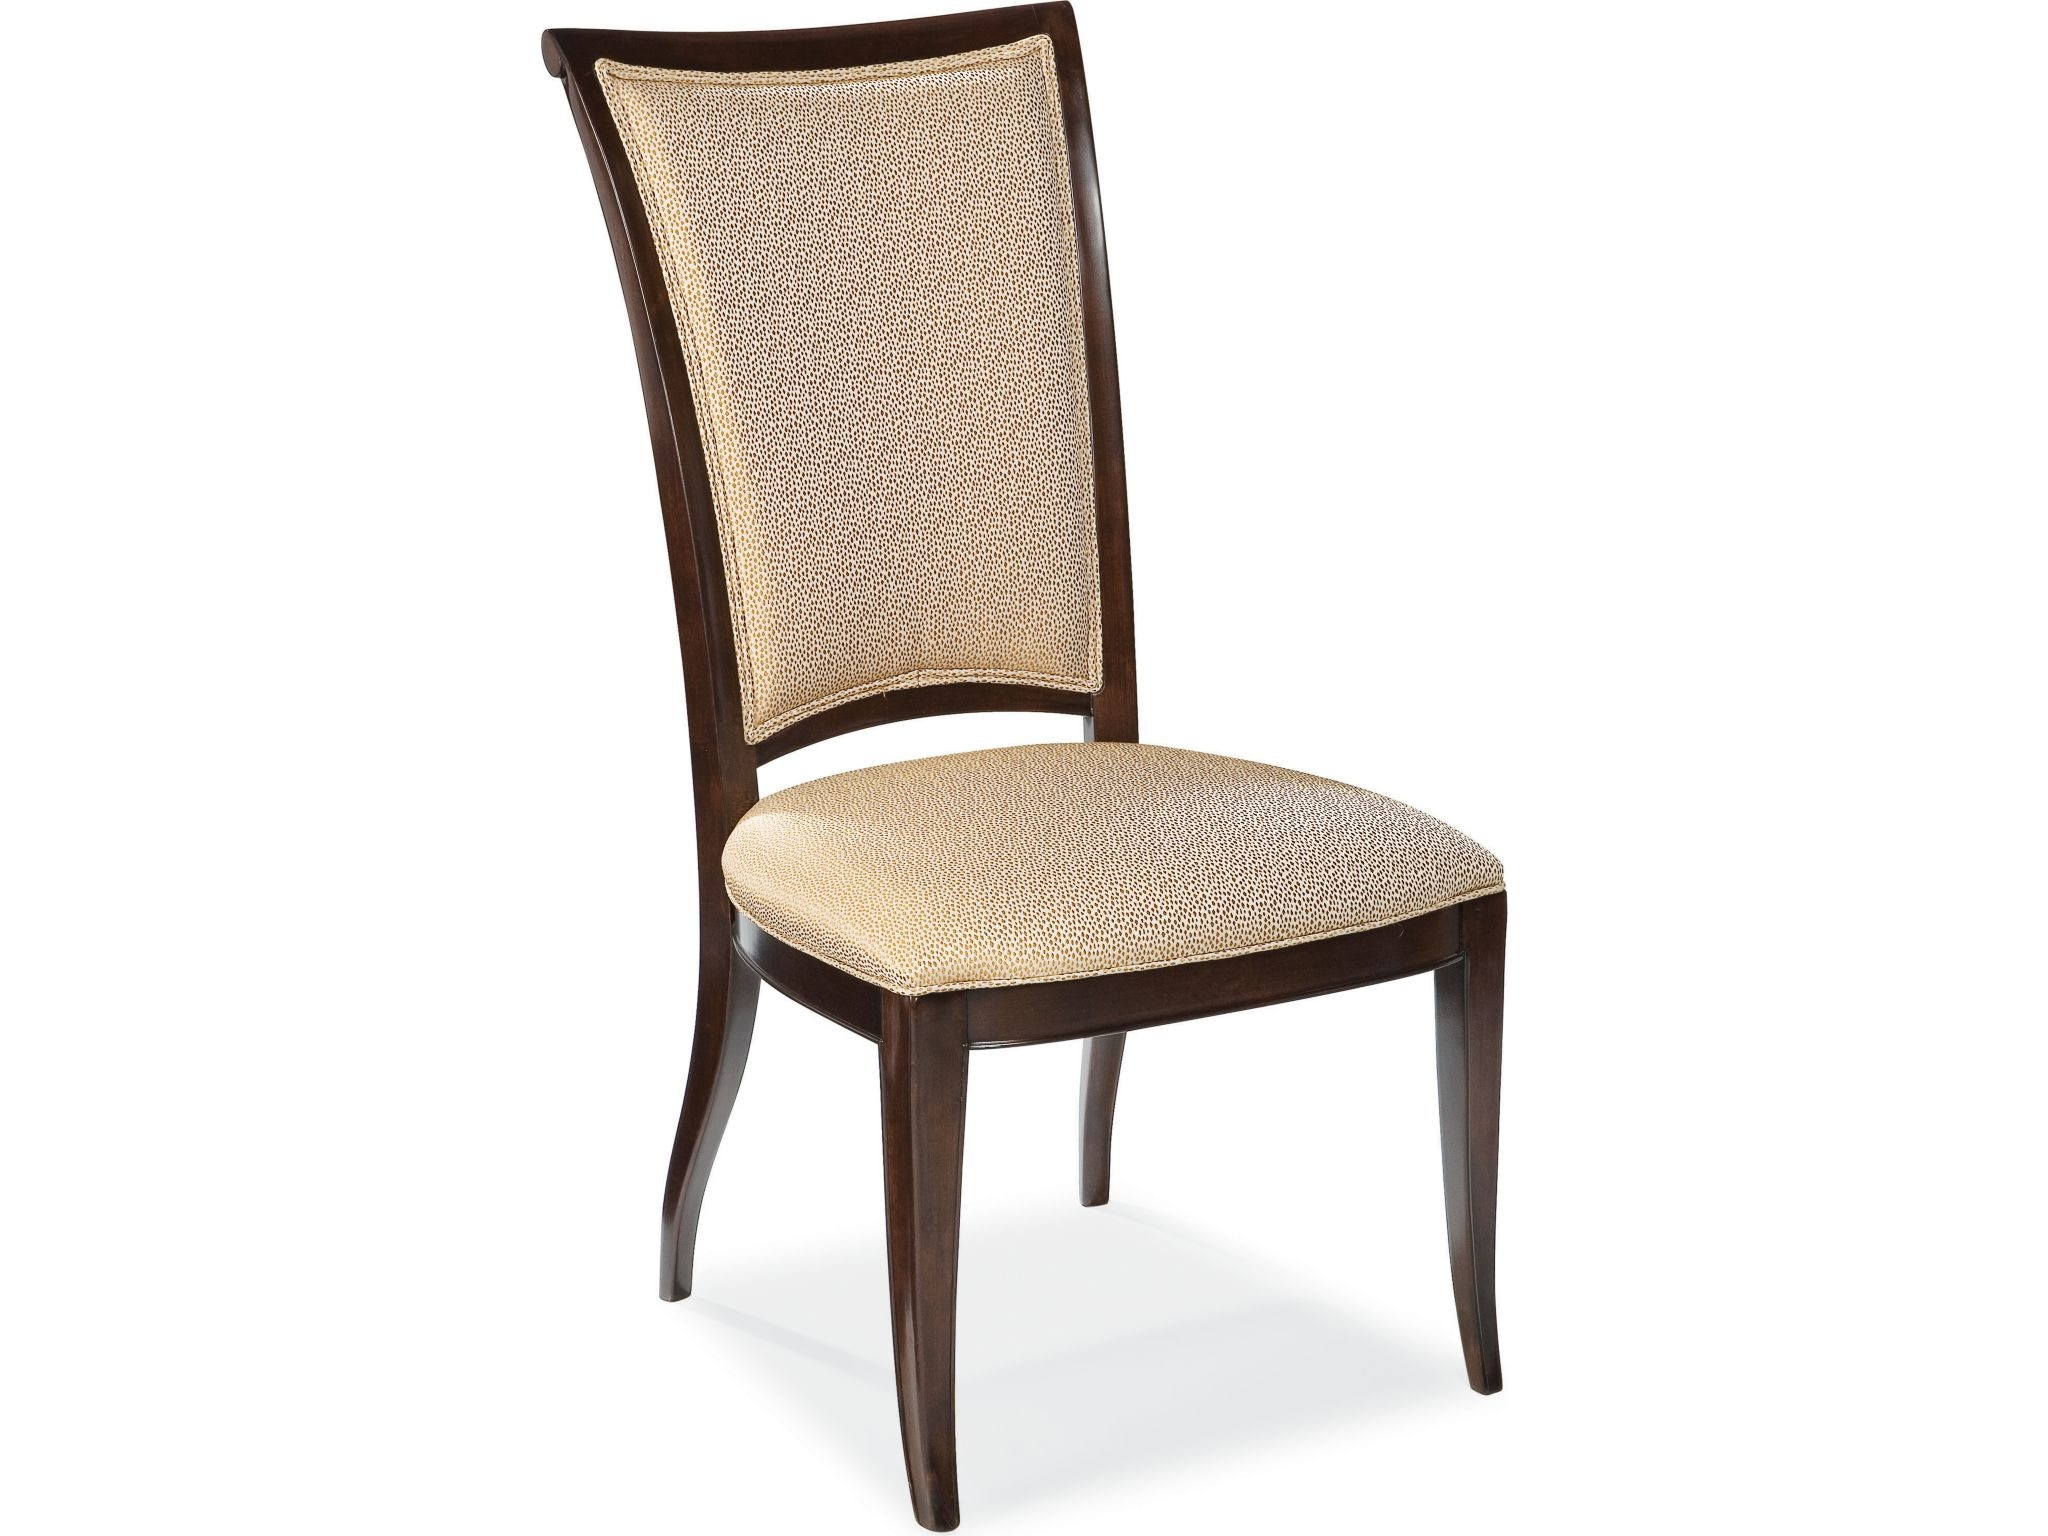 thomasville dining room upholstered side chair 45521 871 thomasville dining room side chair 82821 821 hickory